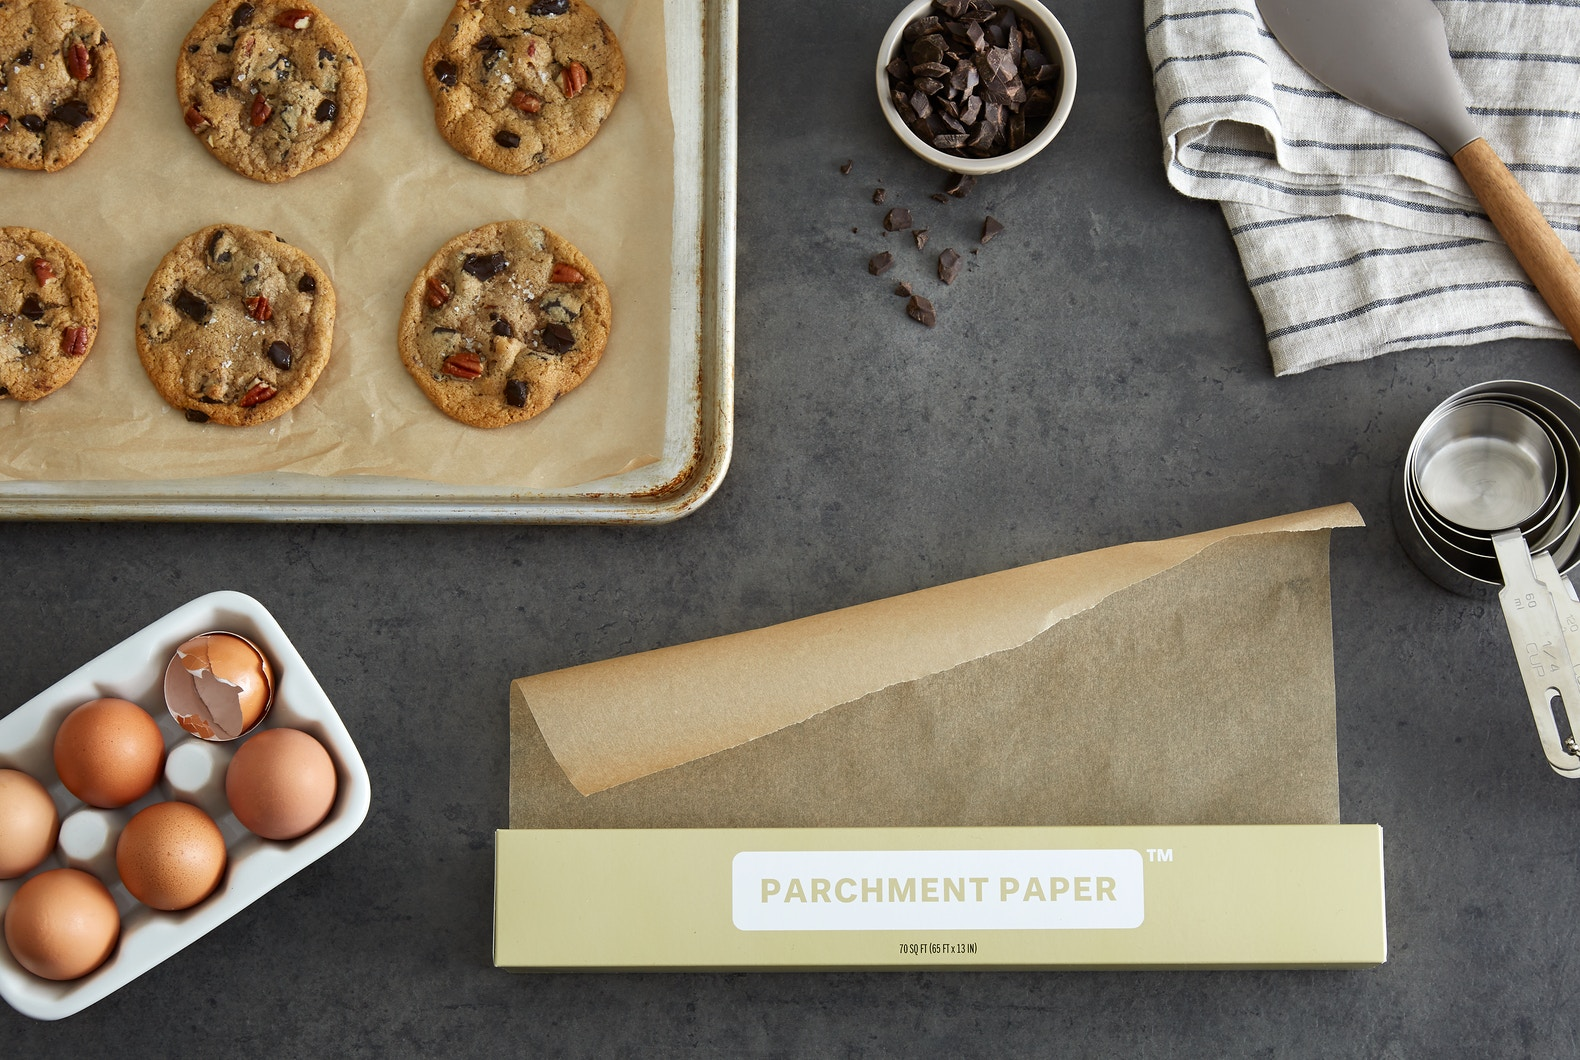 Unbleached Parchment Paper - To be honest, I've never used parchment paper before. This is a HUGE upgrade from the aluminum foil I've been using. I used it to bake veggies and it was perfect! Nothing stuck to the parchment and it didn't burn. Note: The parchment paper is safe to use up to 445º.